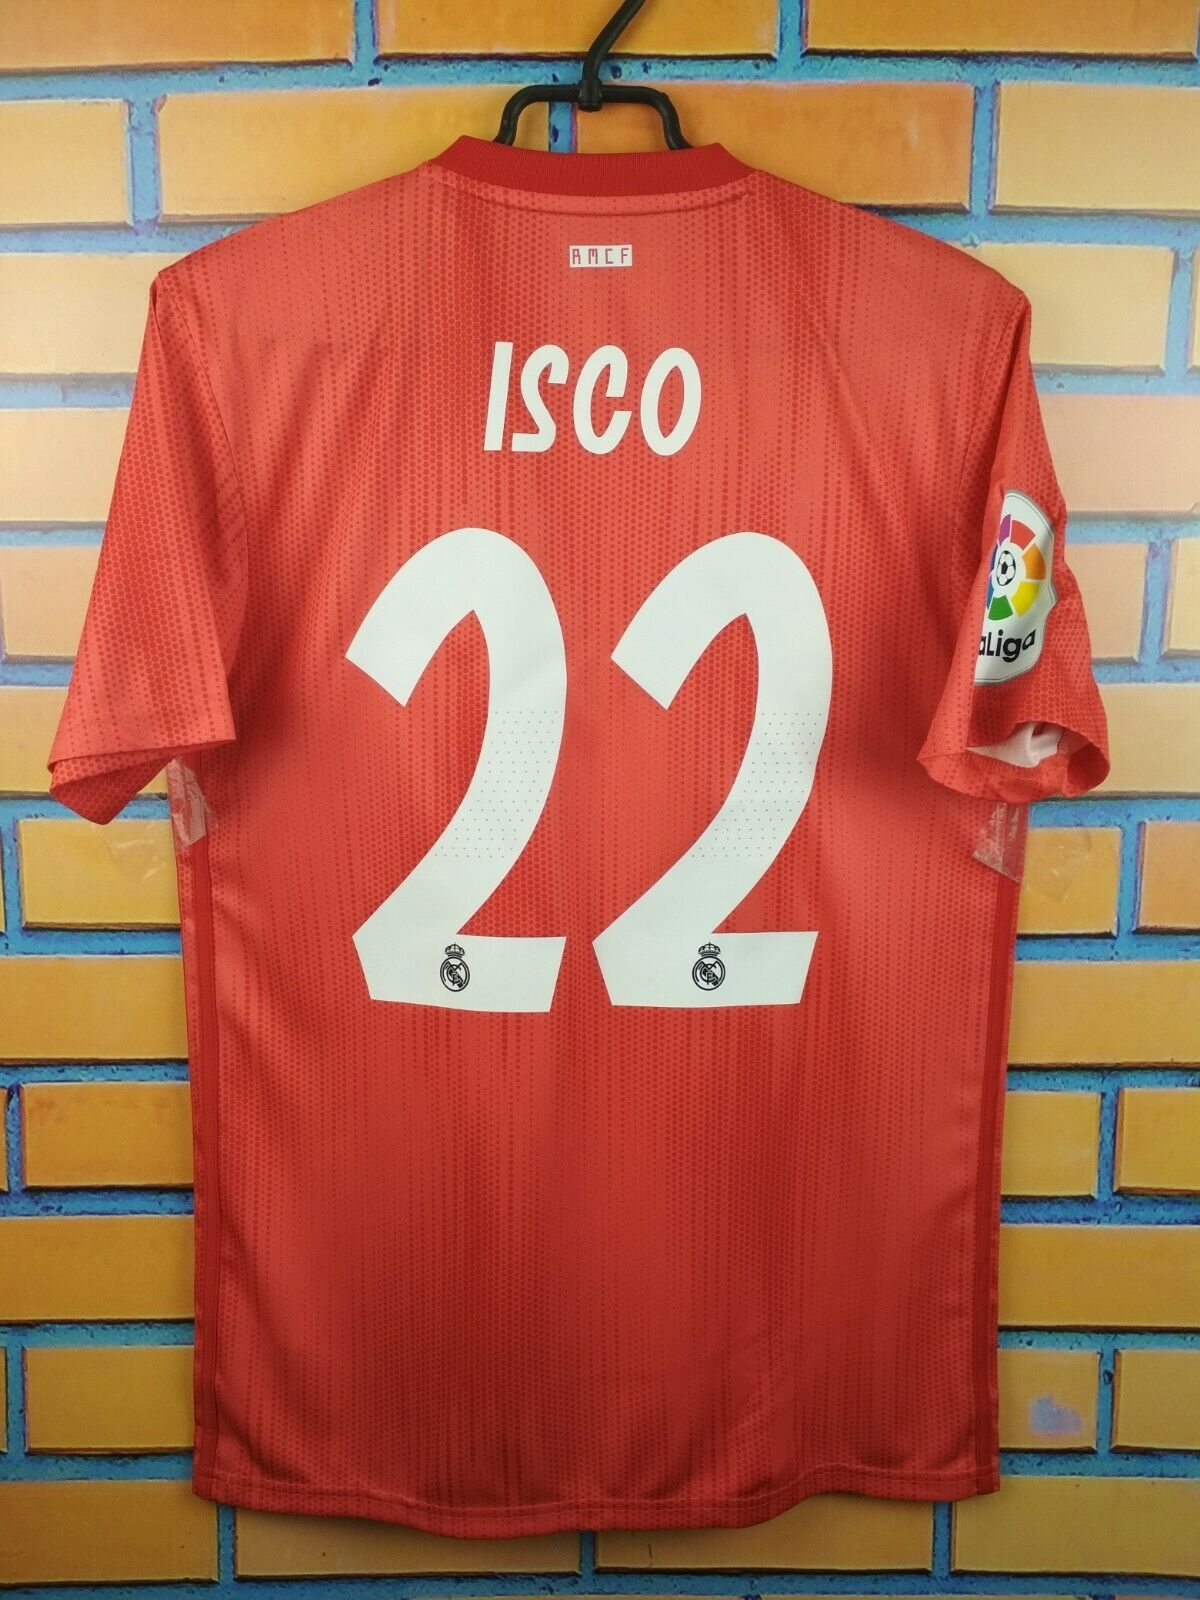 Isco Real Madrid parley jersey smtutti 2018 2019 away shirt DP5445 soccer Adidas